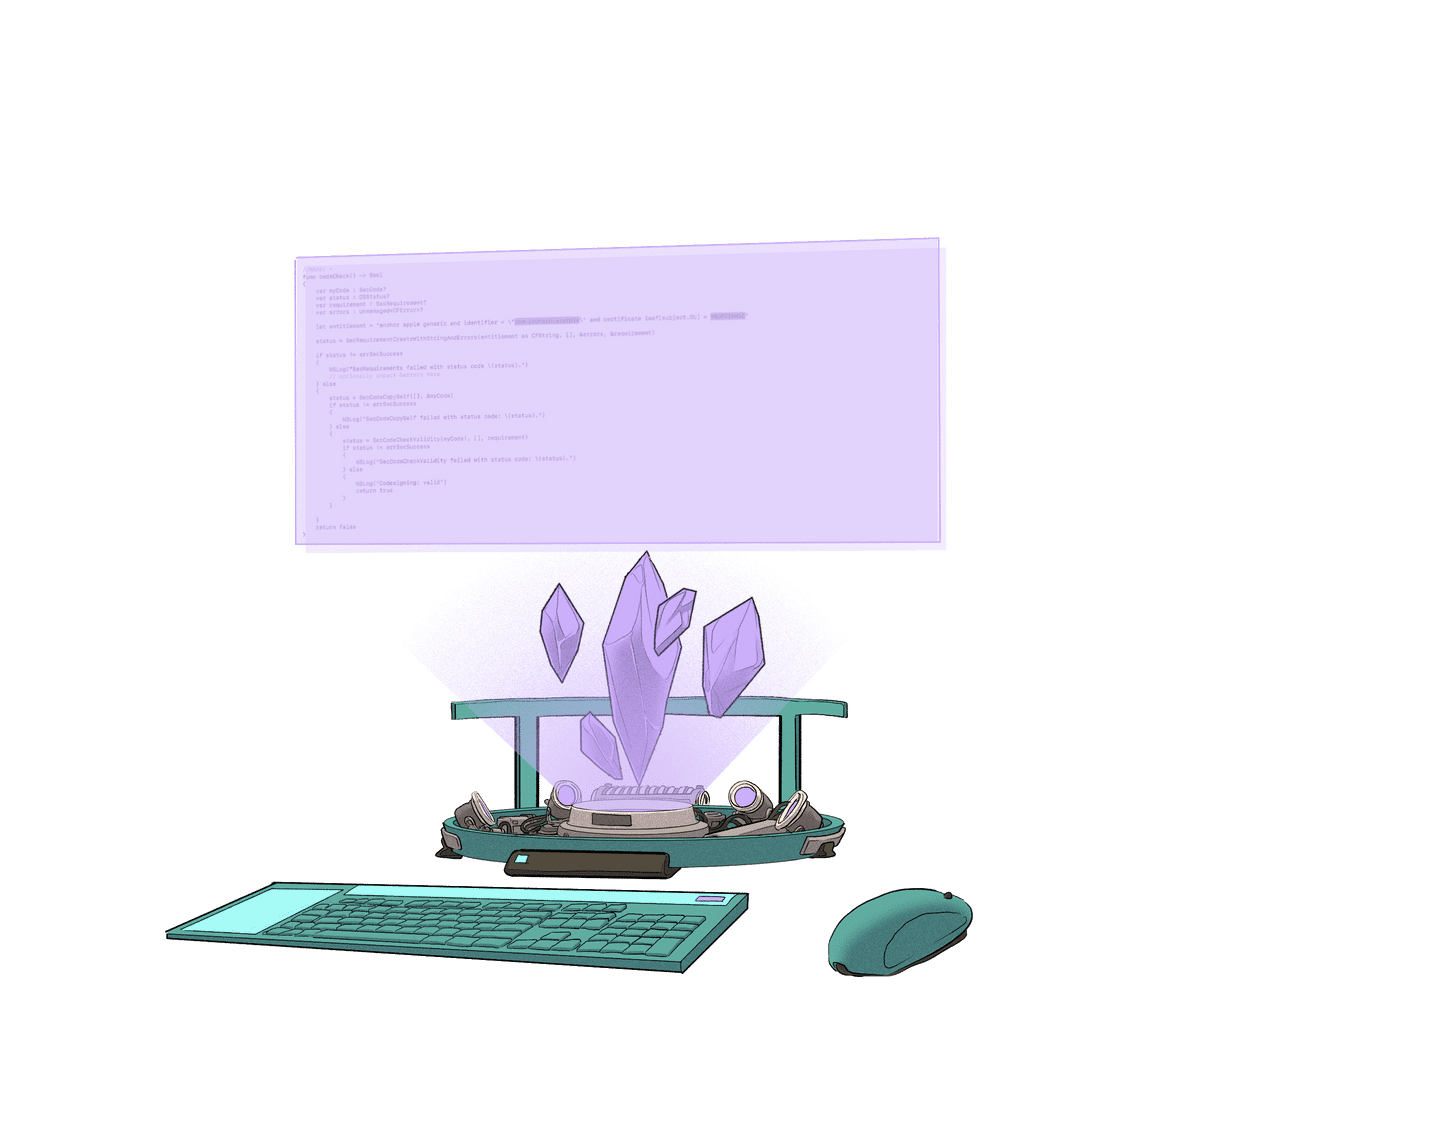 Illustration of a futuristic computer set up, powered by Ethereum crystals.